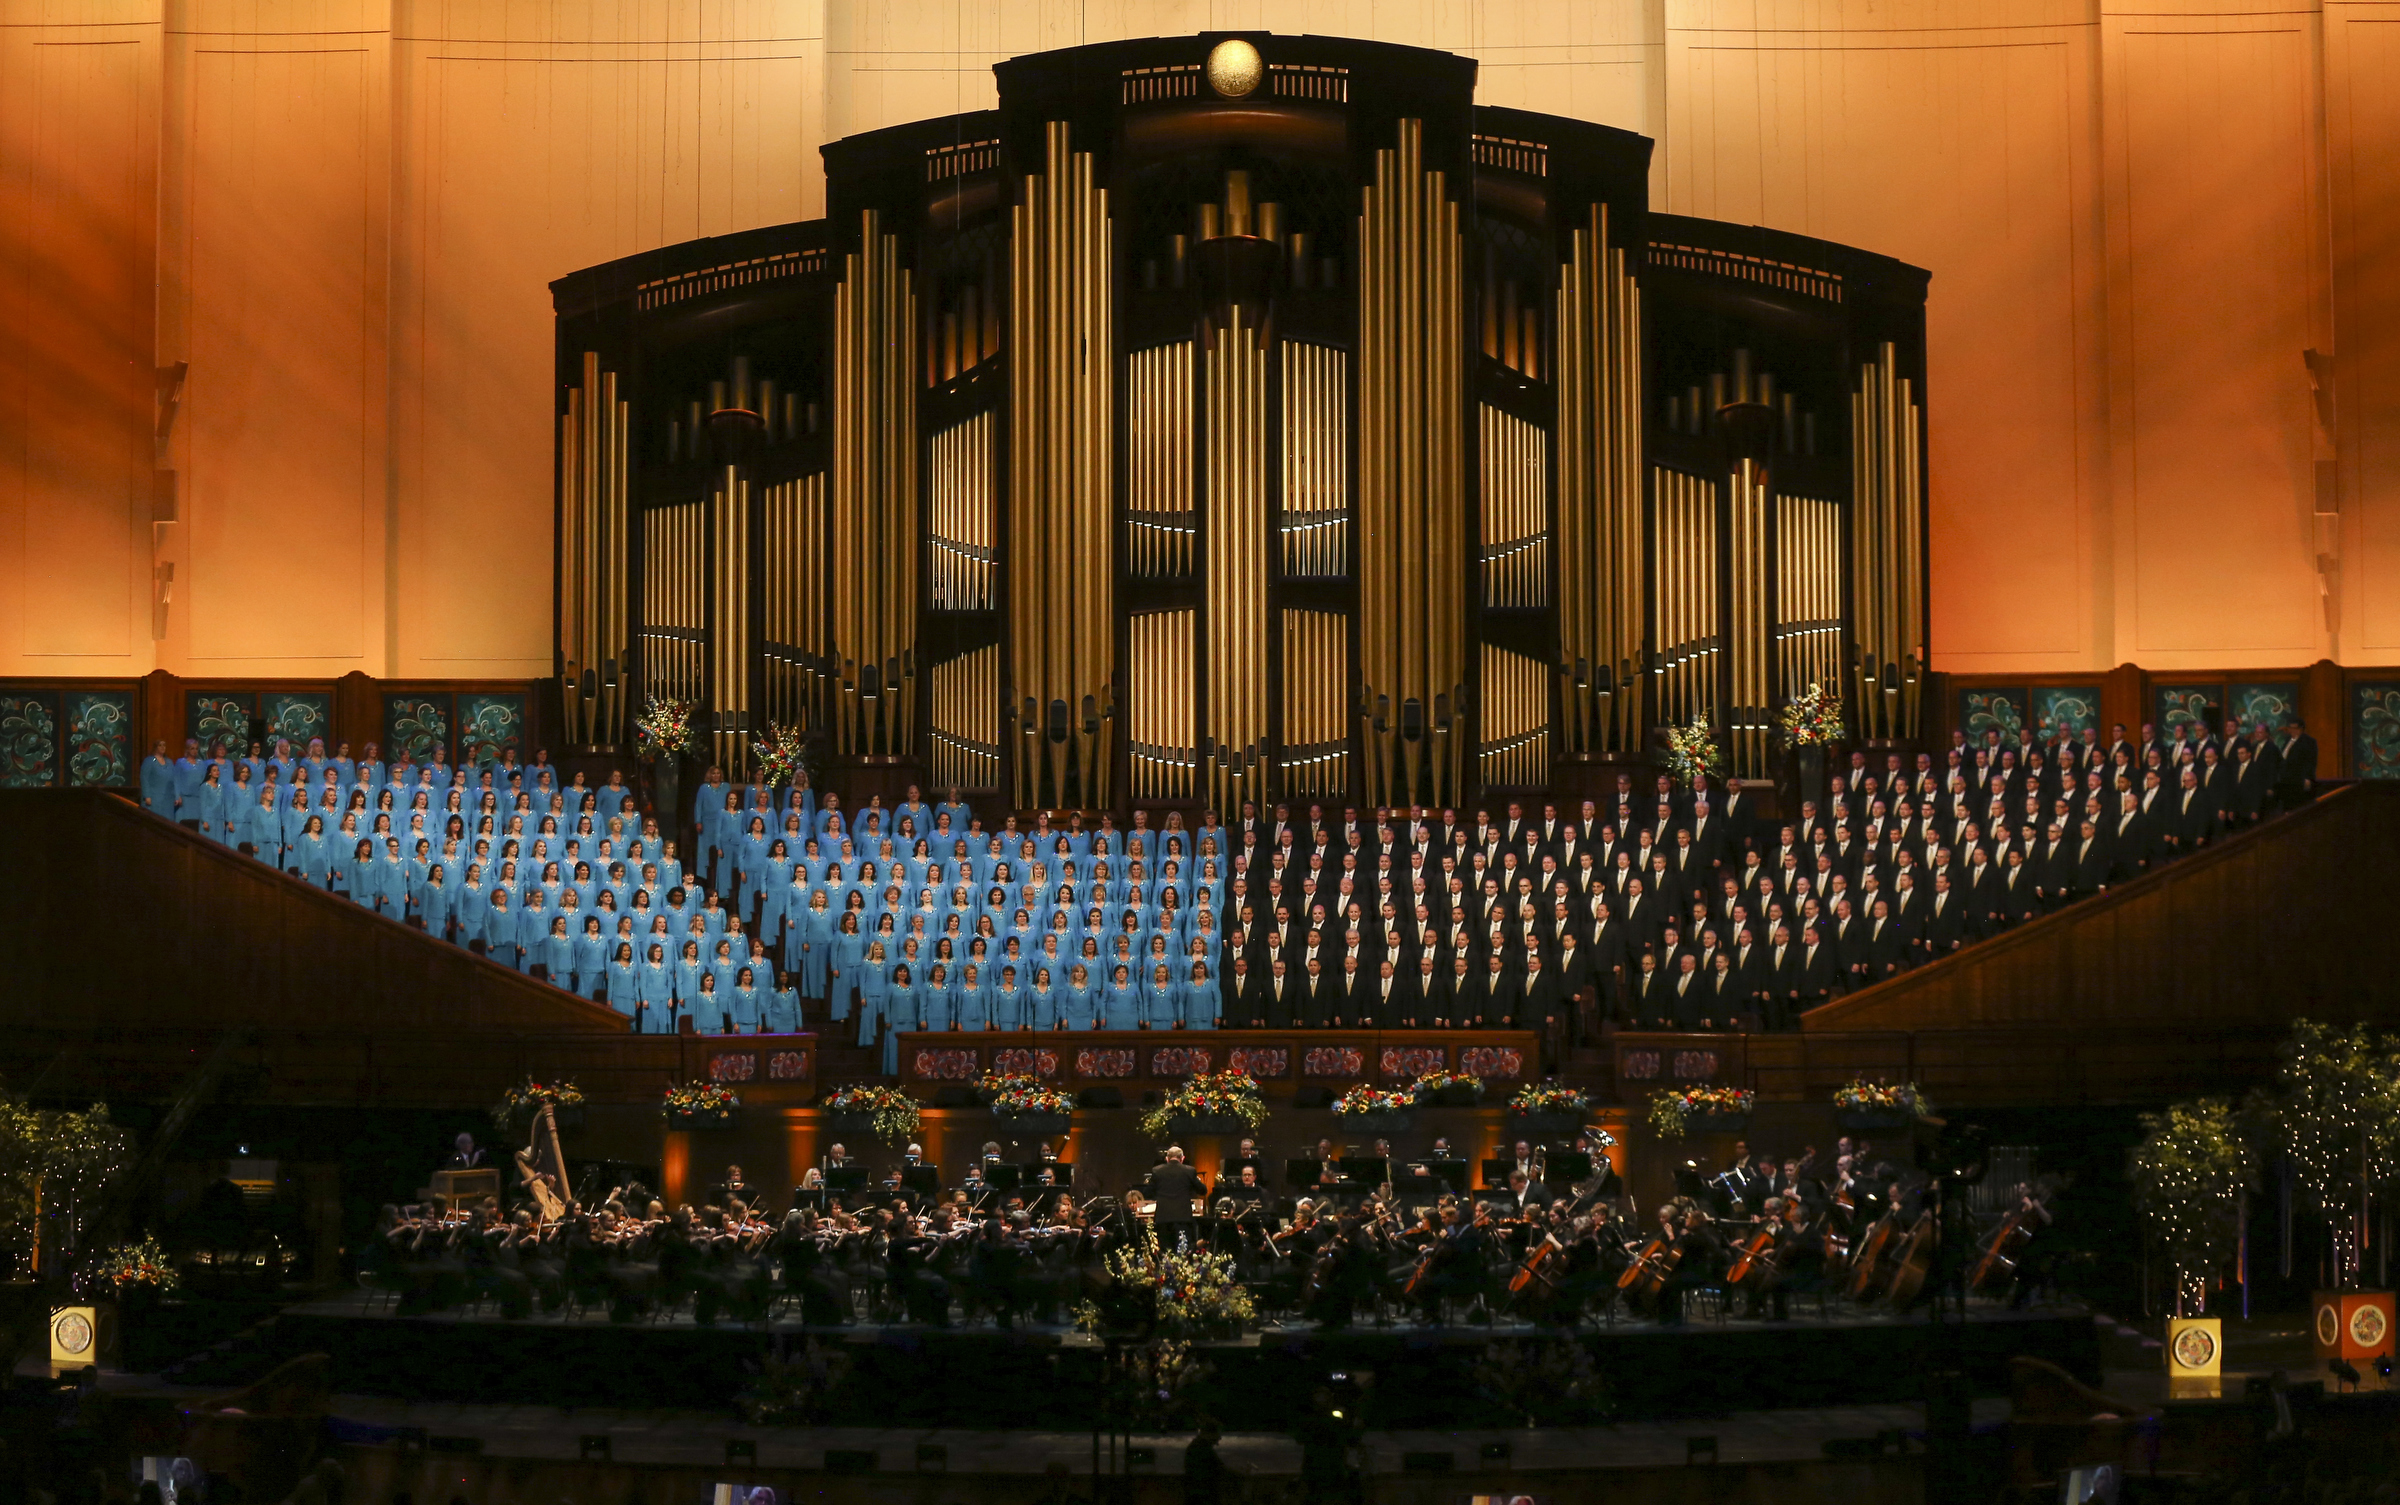 The Tabernacle Choir and Orchestra at Temple Square performs during the Pioneer Day concert at the Conference Center in Salt Lake City on Friday, July 19, 2019.